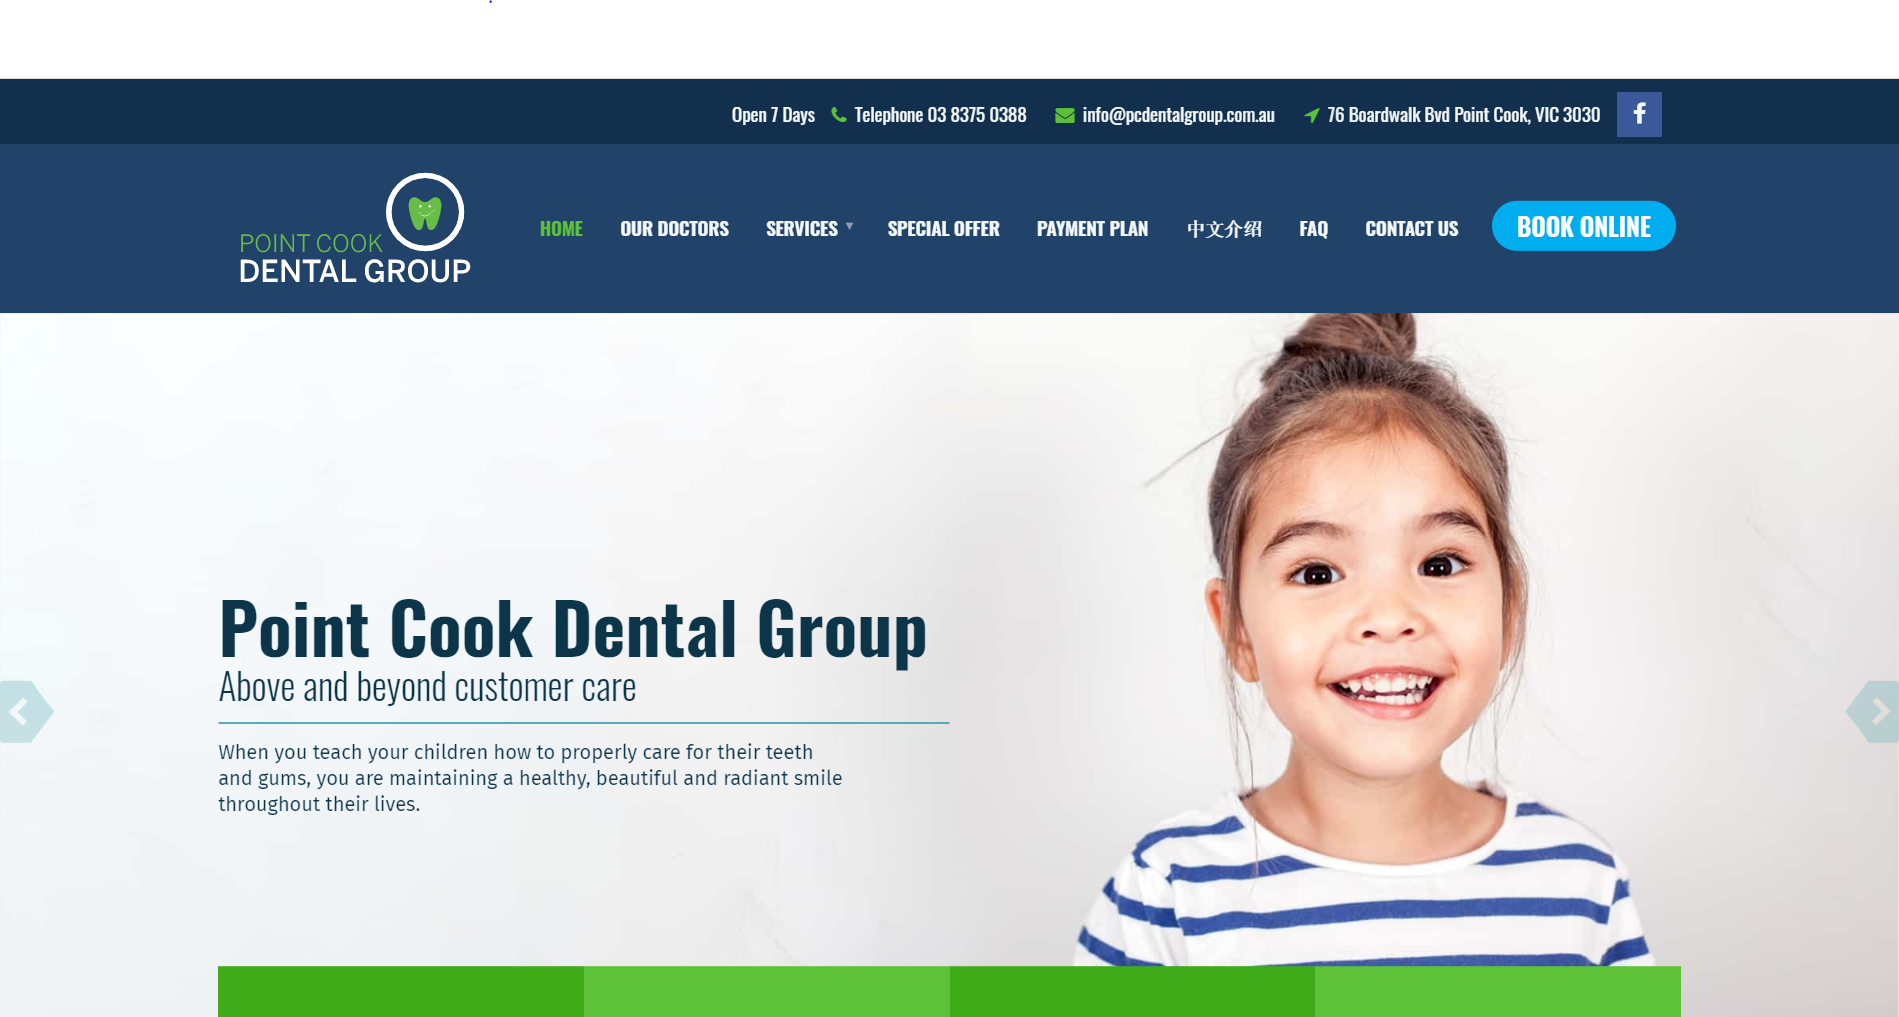 Point Cook Dental Group